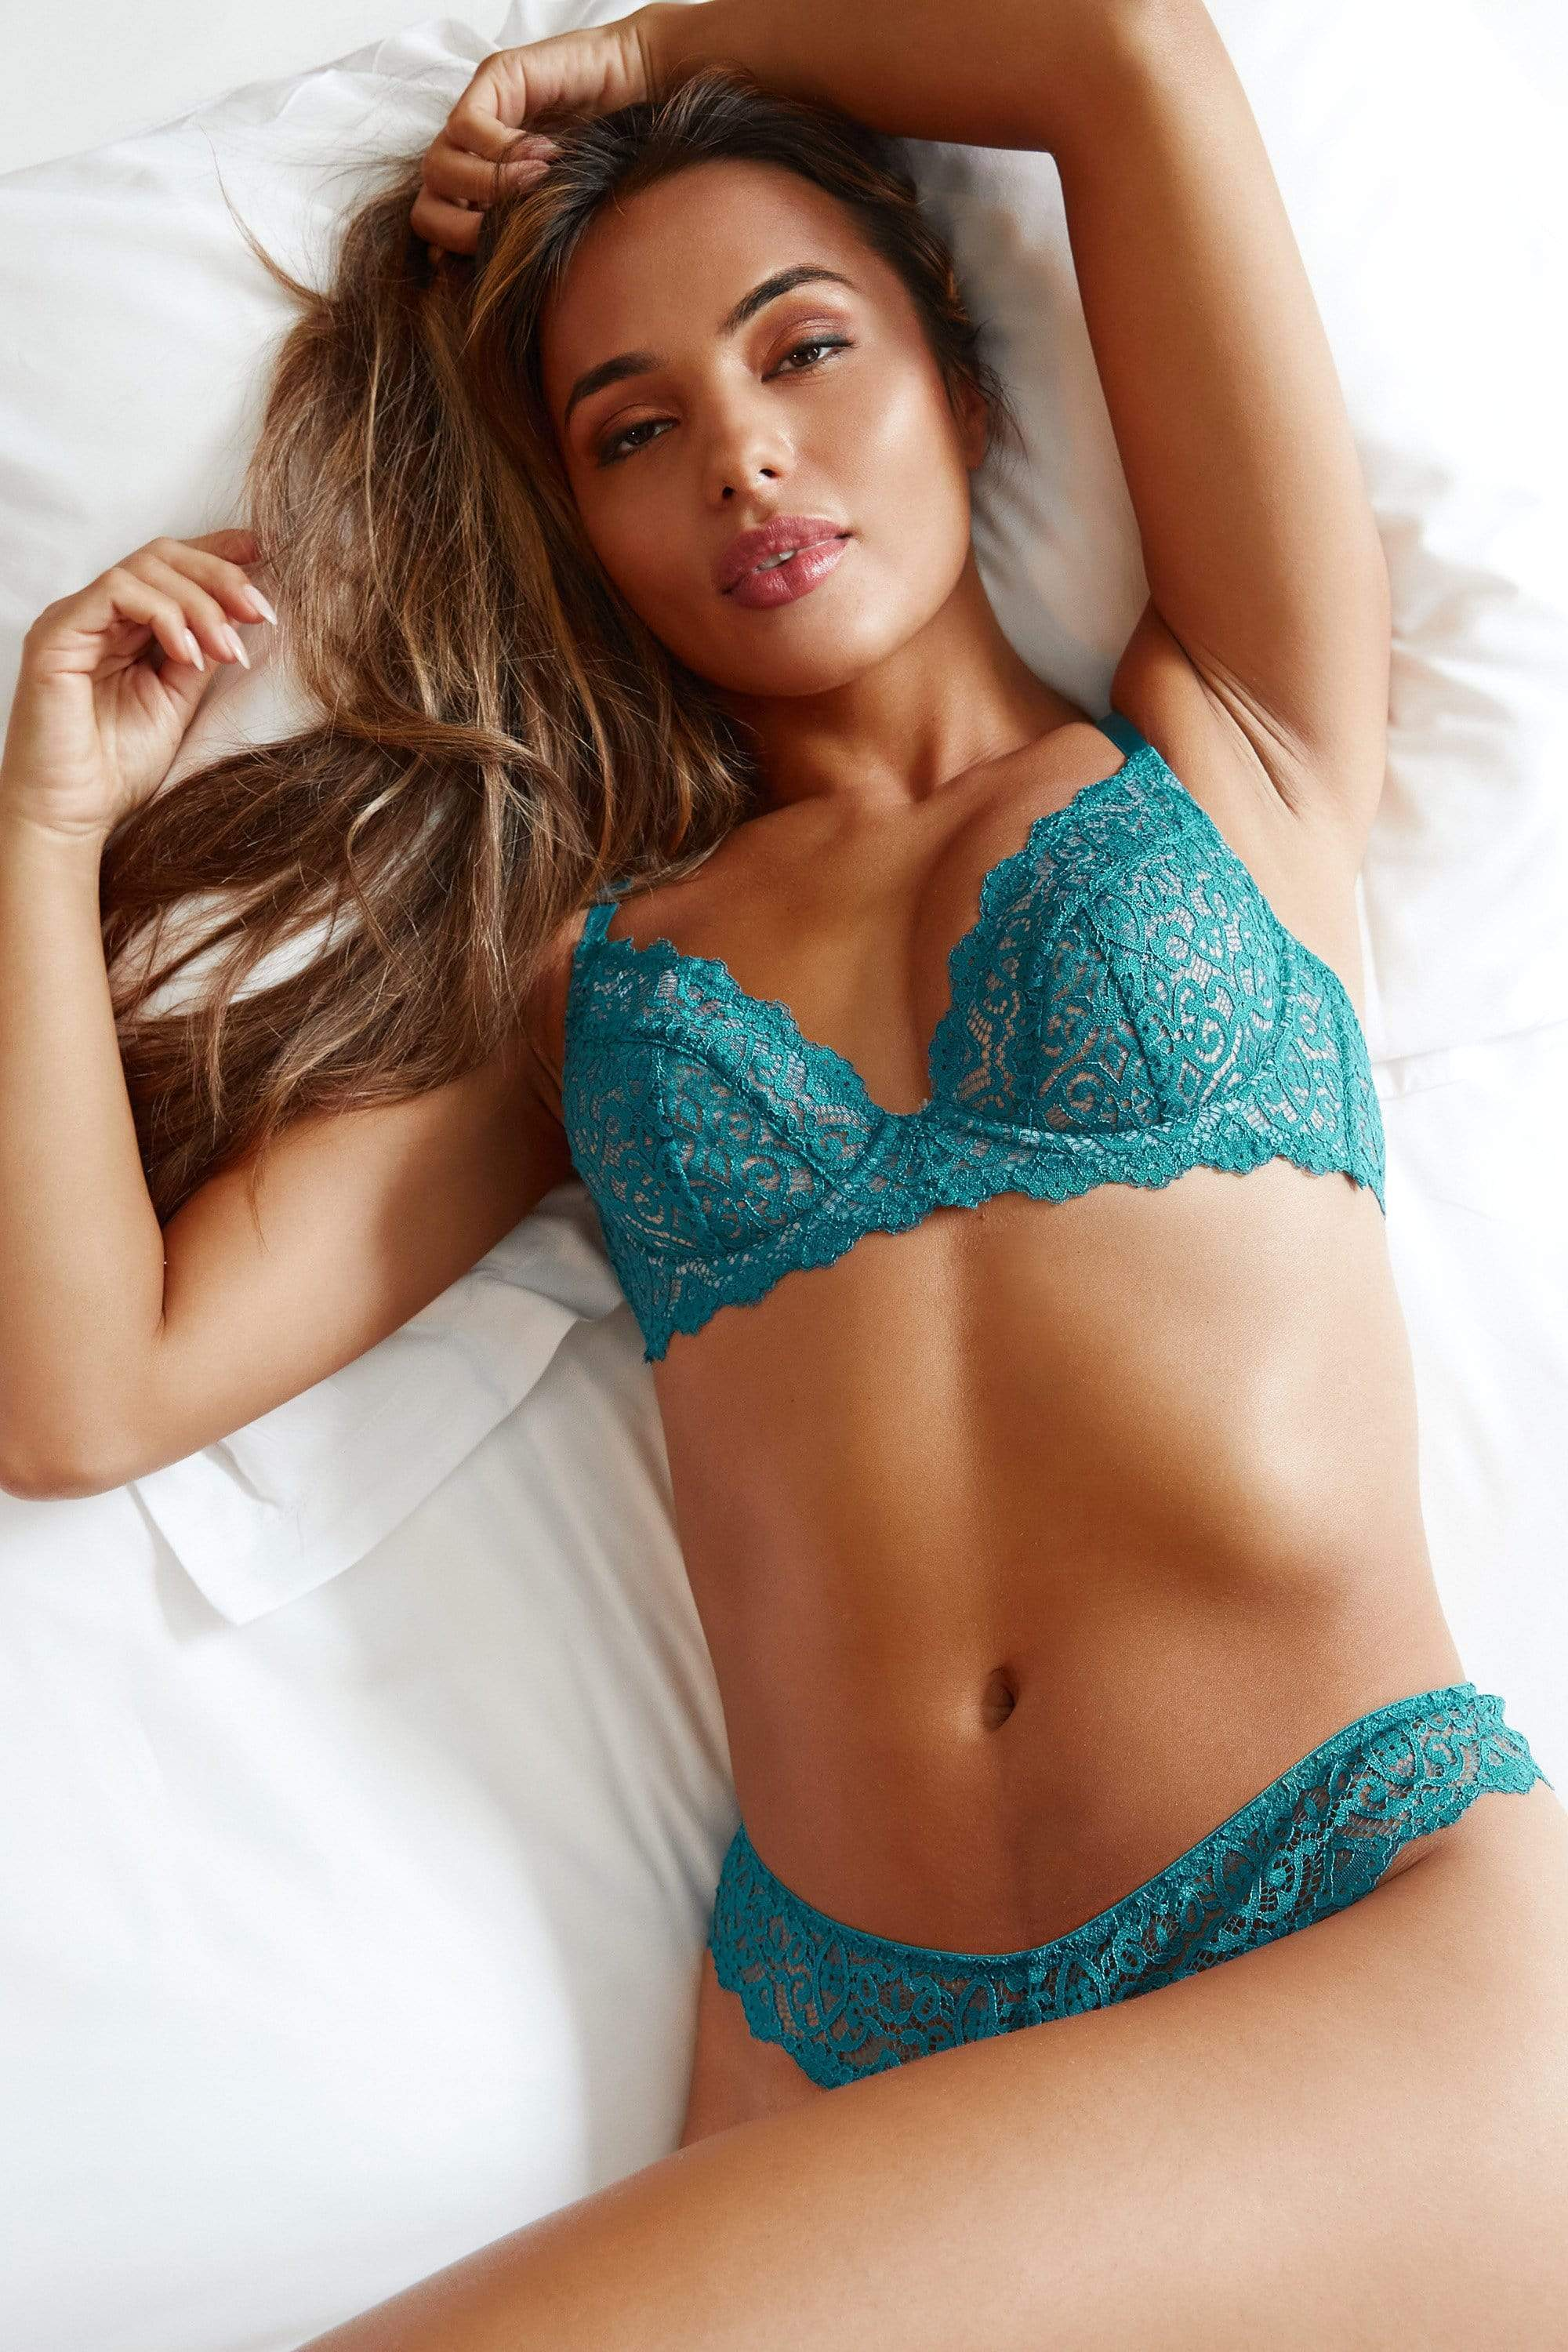 Wolf & Whistle Ariana Teal Everyday Lace Bra 32B